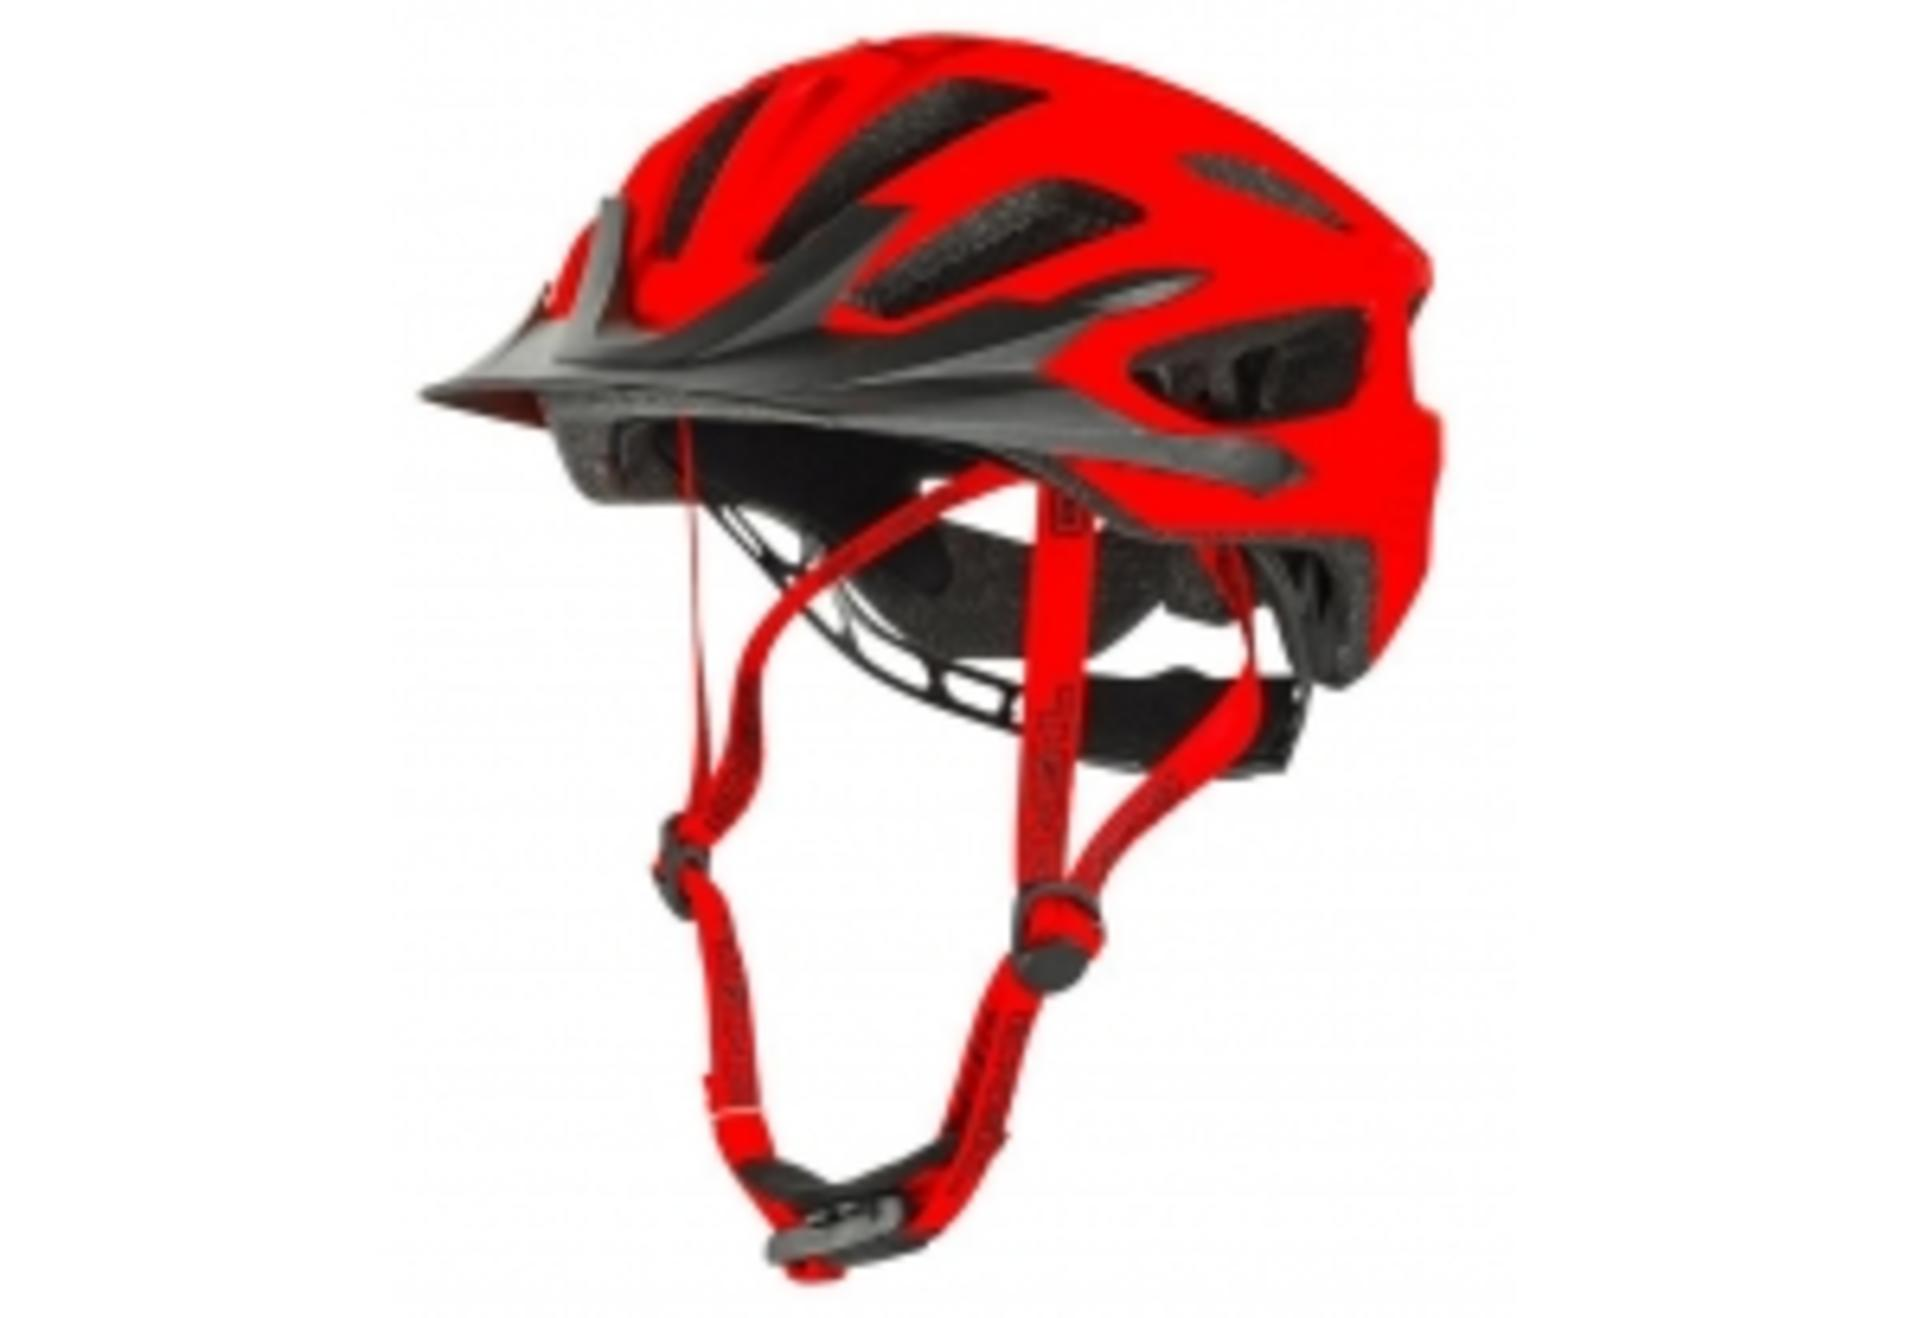 Casco Oneal Q RL red xs/s/m